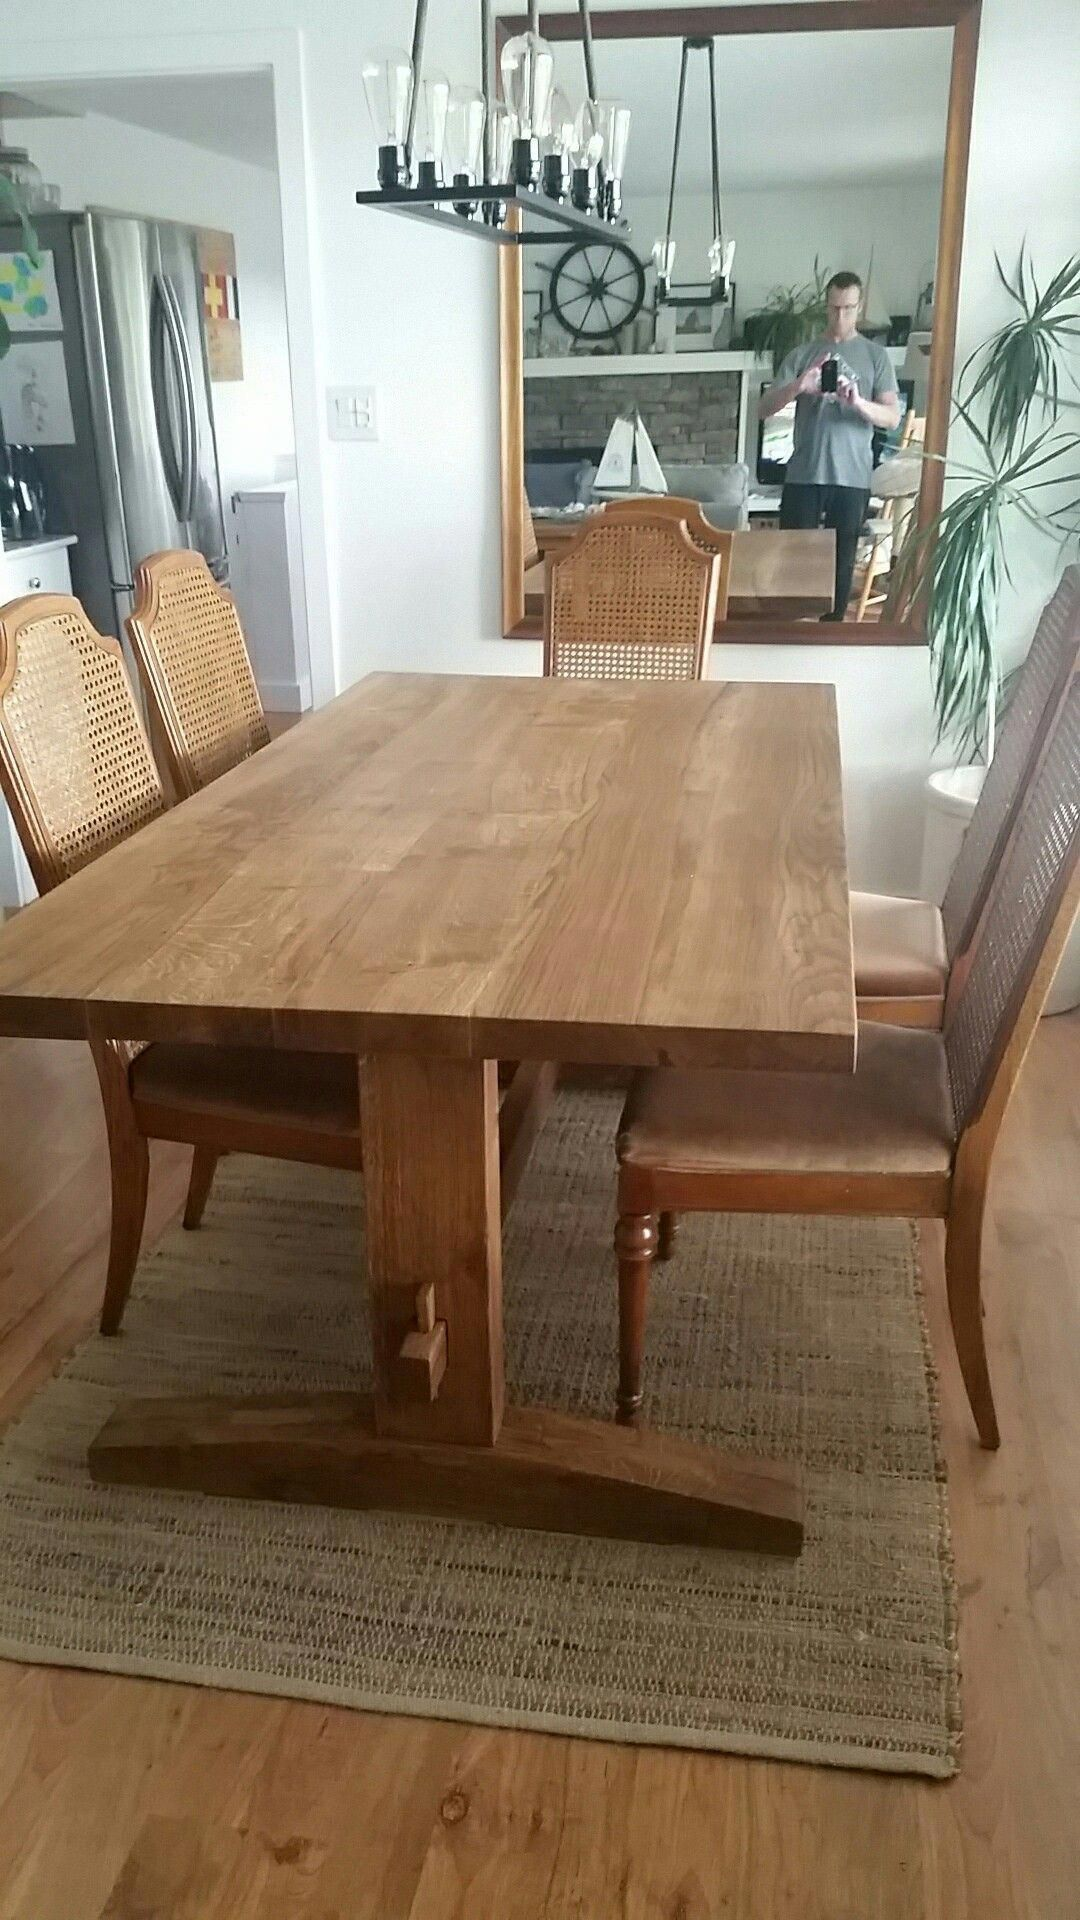 Formal Living Room Accent Chairs Id 9818309656 Leatherchairwithottoman Tressel Dining Table Trestle Dining Tables Diy Dining Room Table